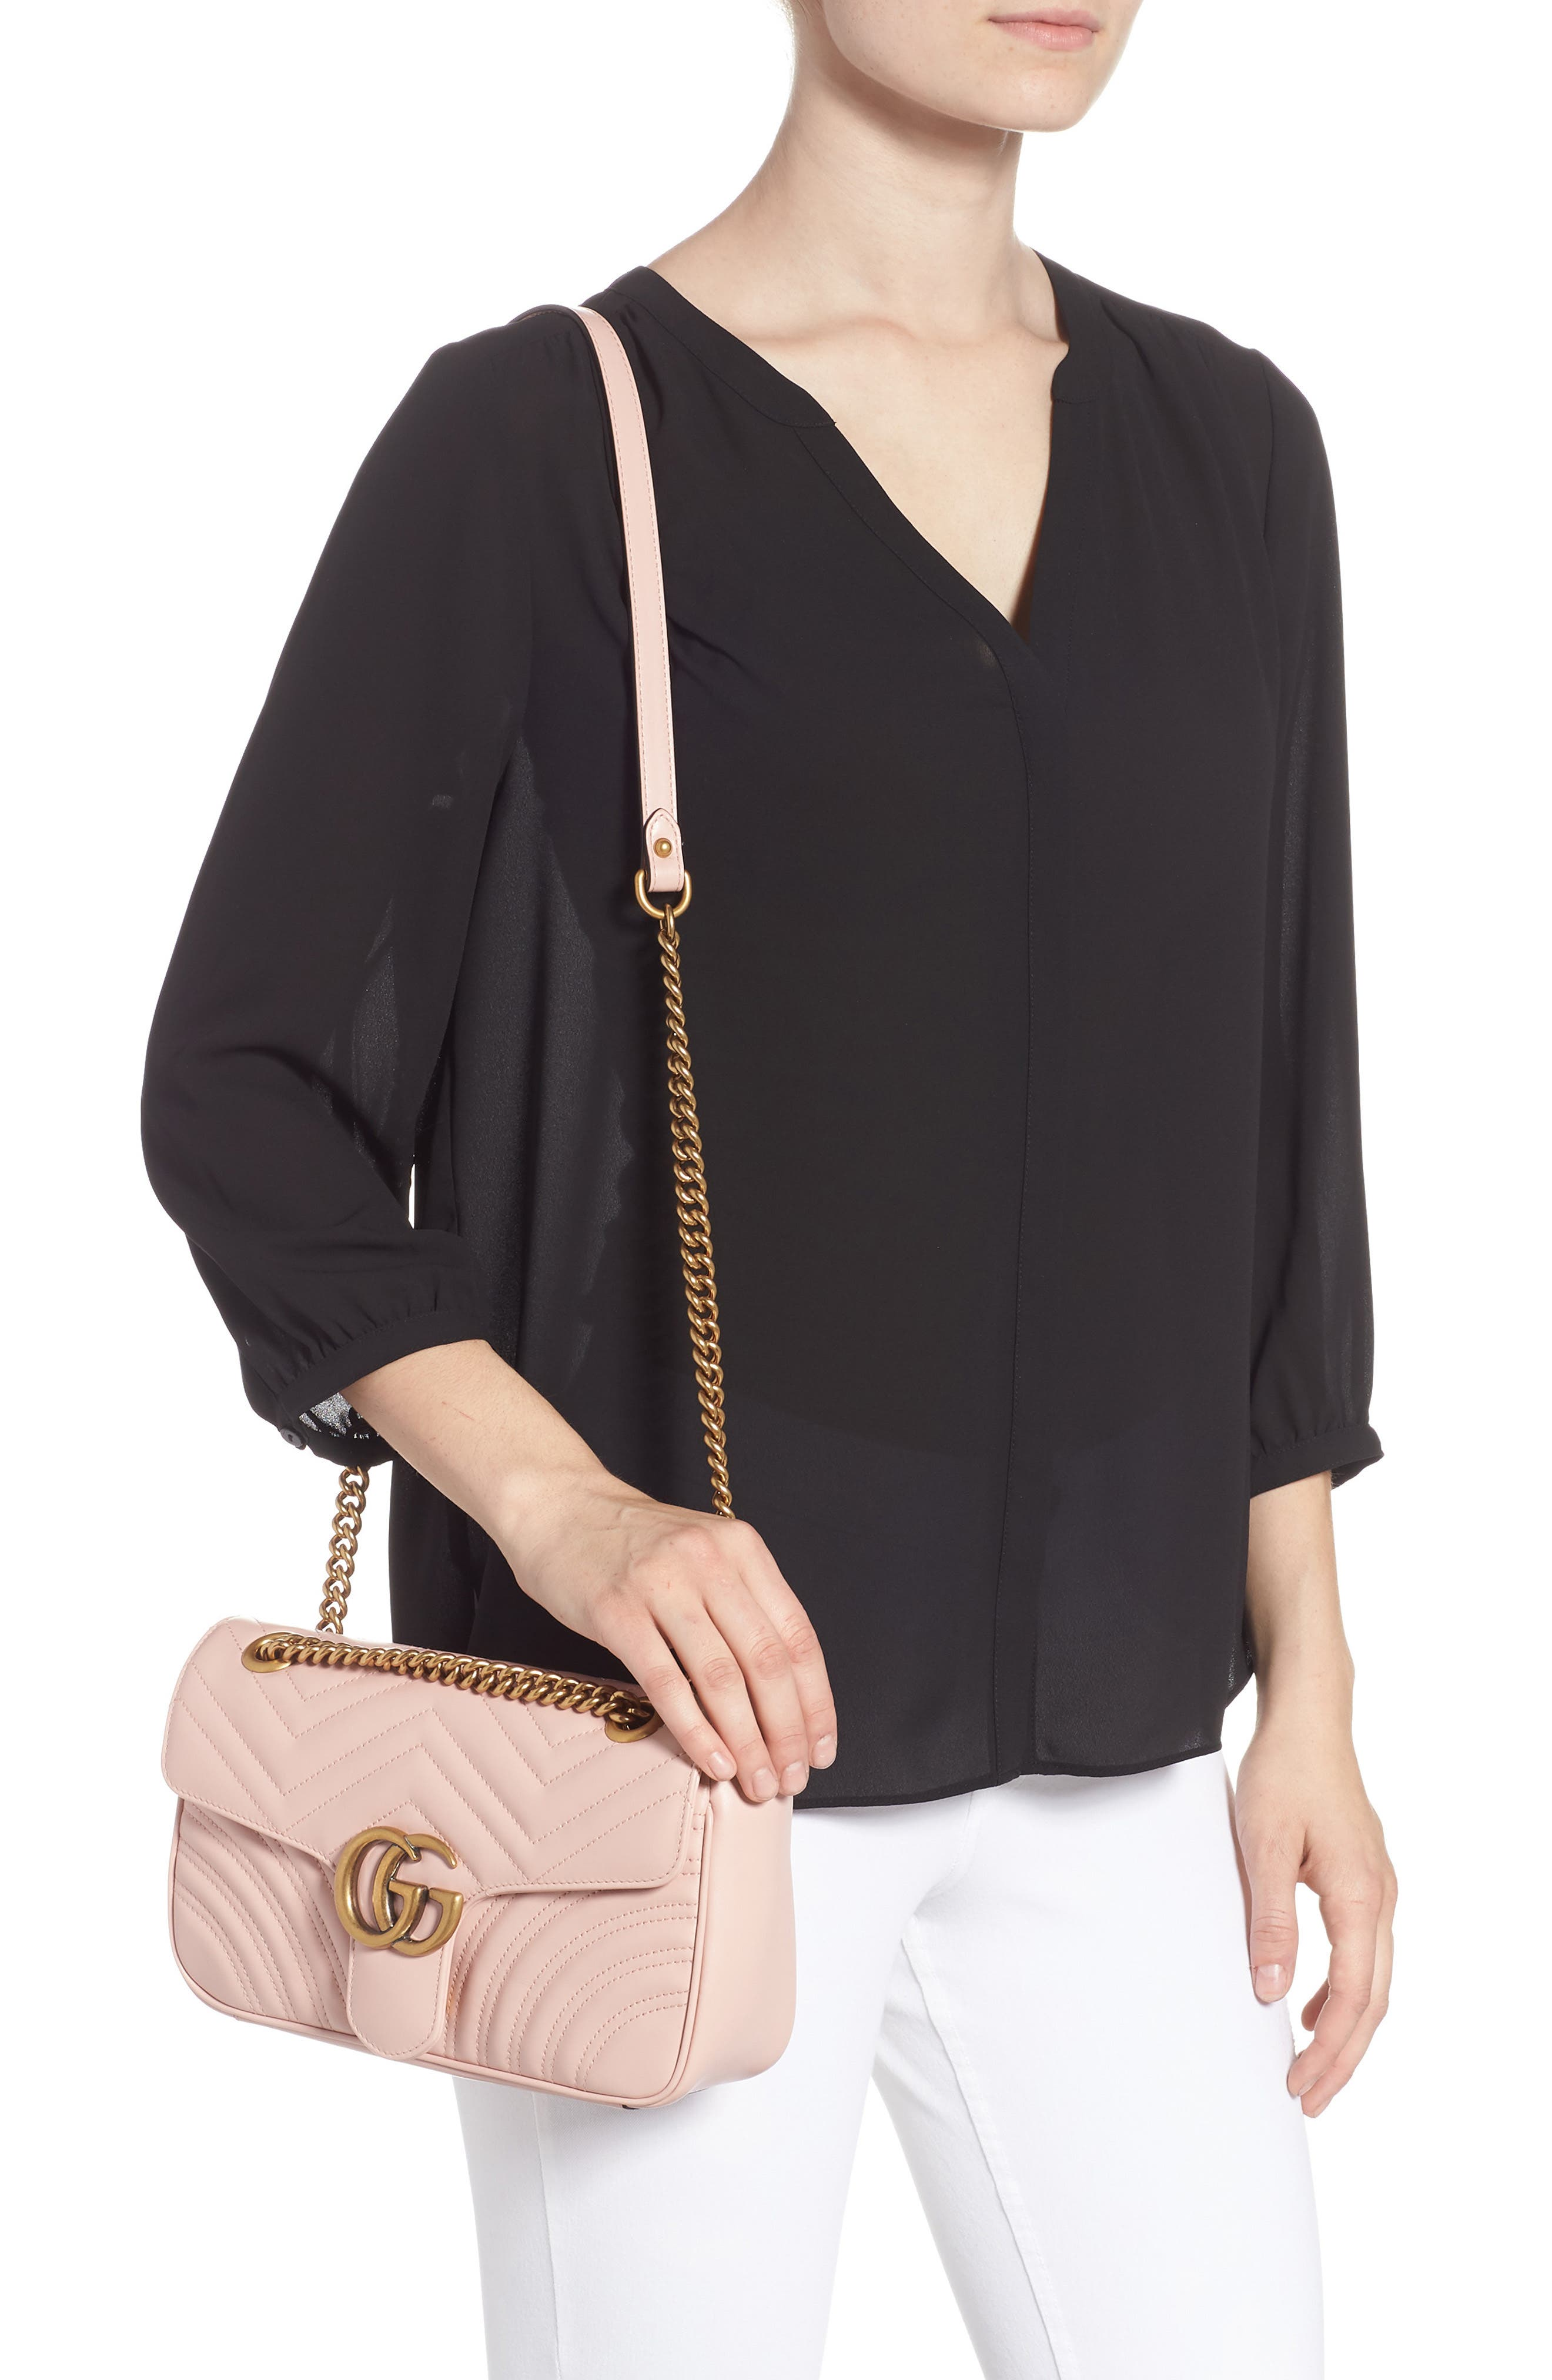 ,                             Small GG Marmont 2.0 Matelassé Leather Shoulder Bag,                             Alternate thumbnail 2, color,                             PERFECT PINK/ PERFECT PINK